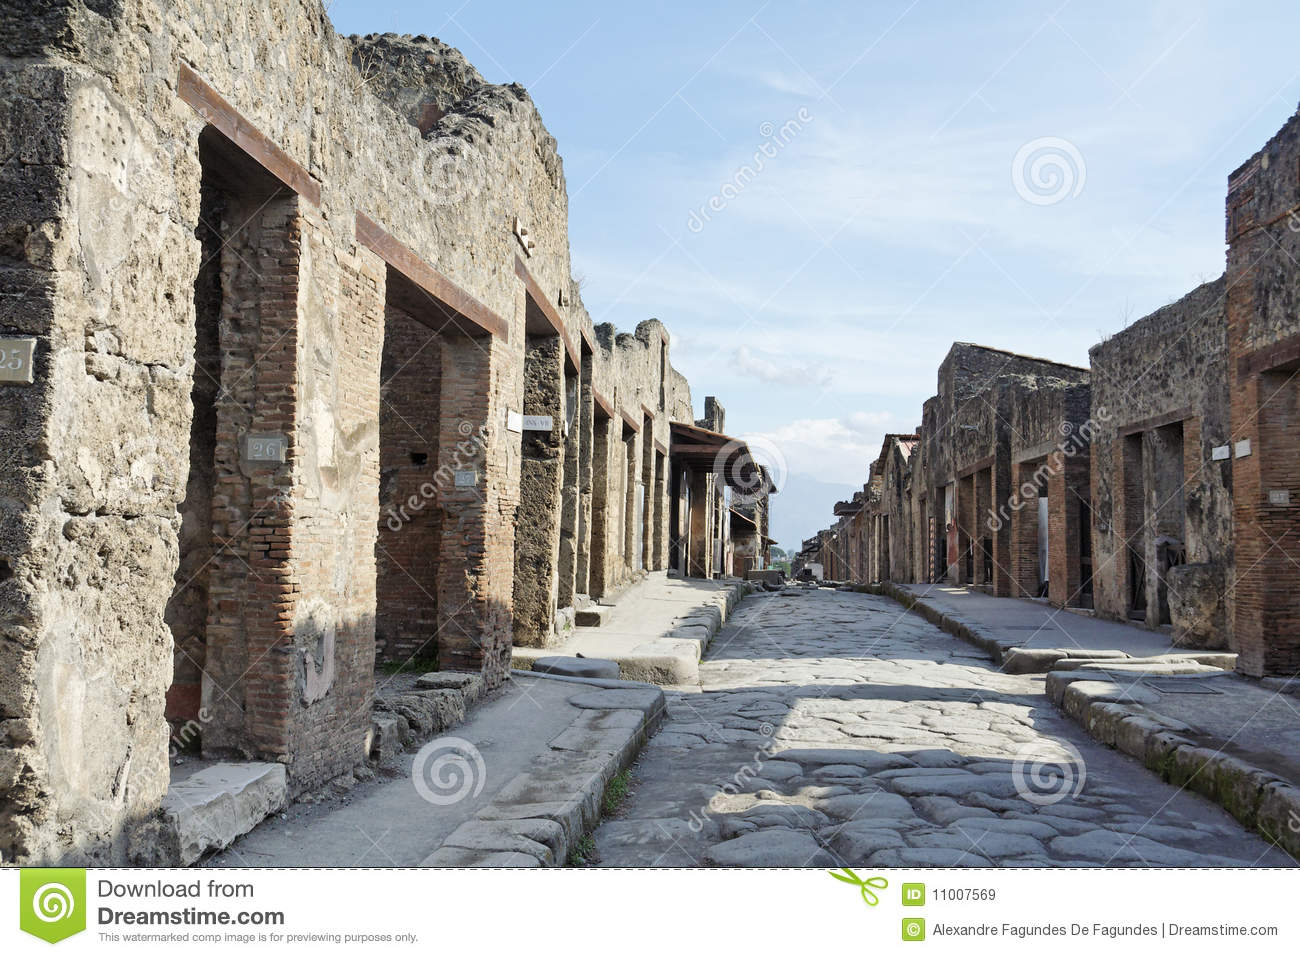 ... walls and doors of the ancient houses and businesses.South of Italy